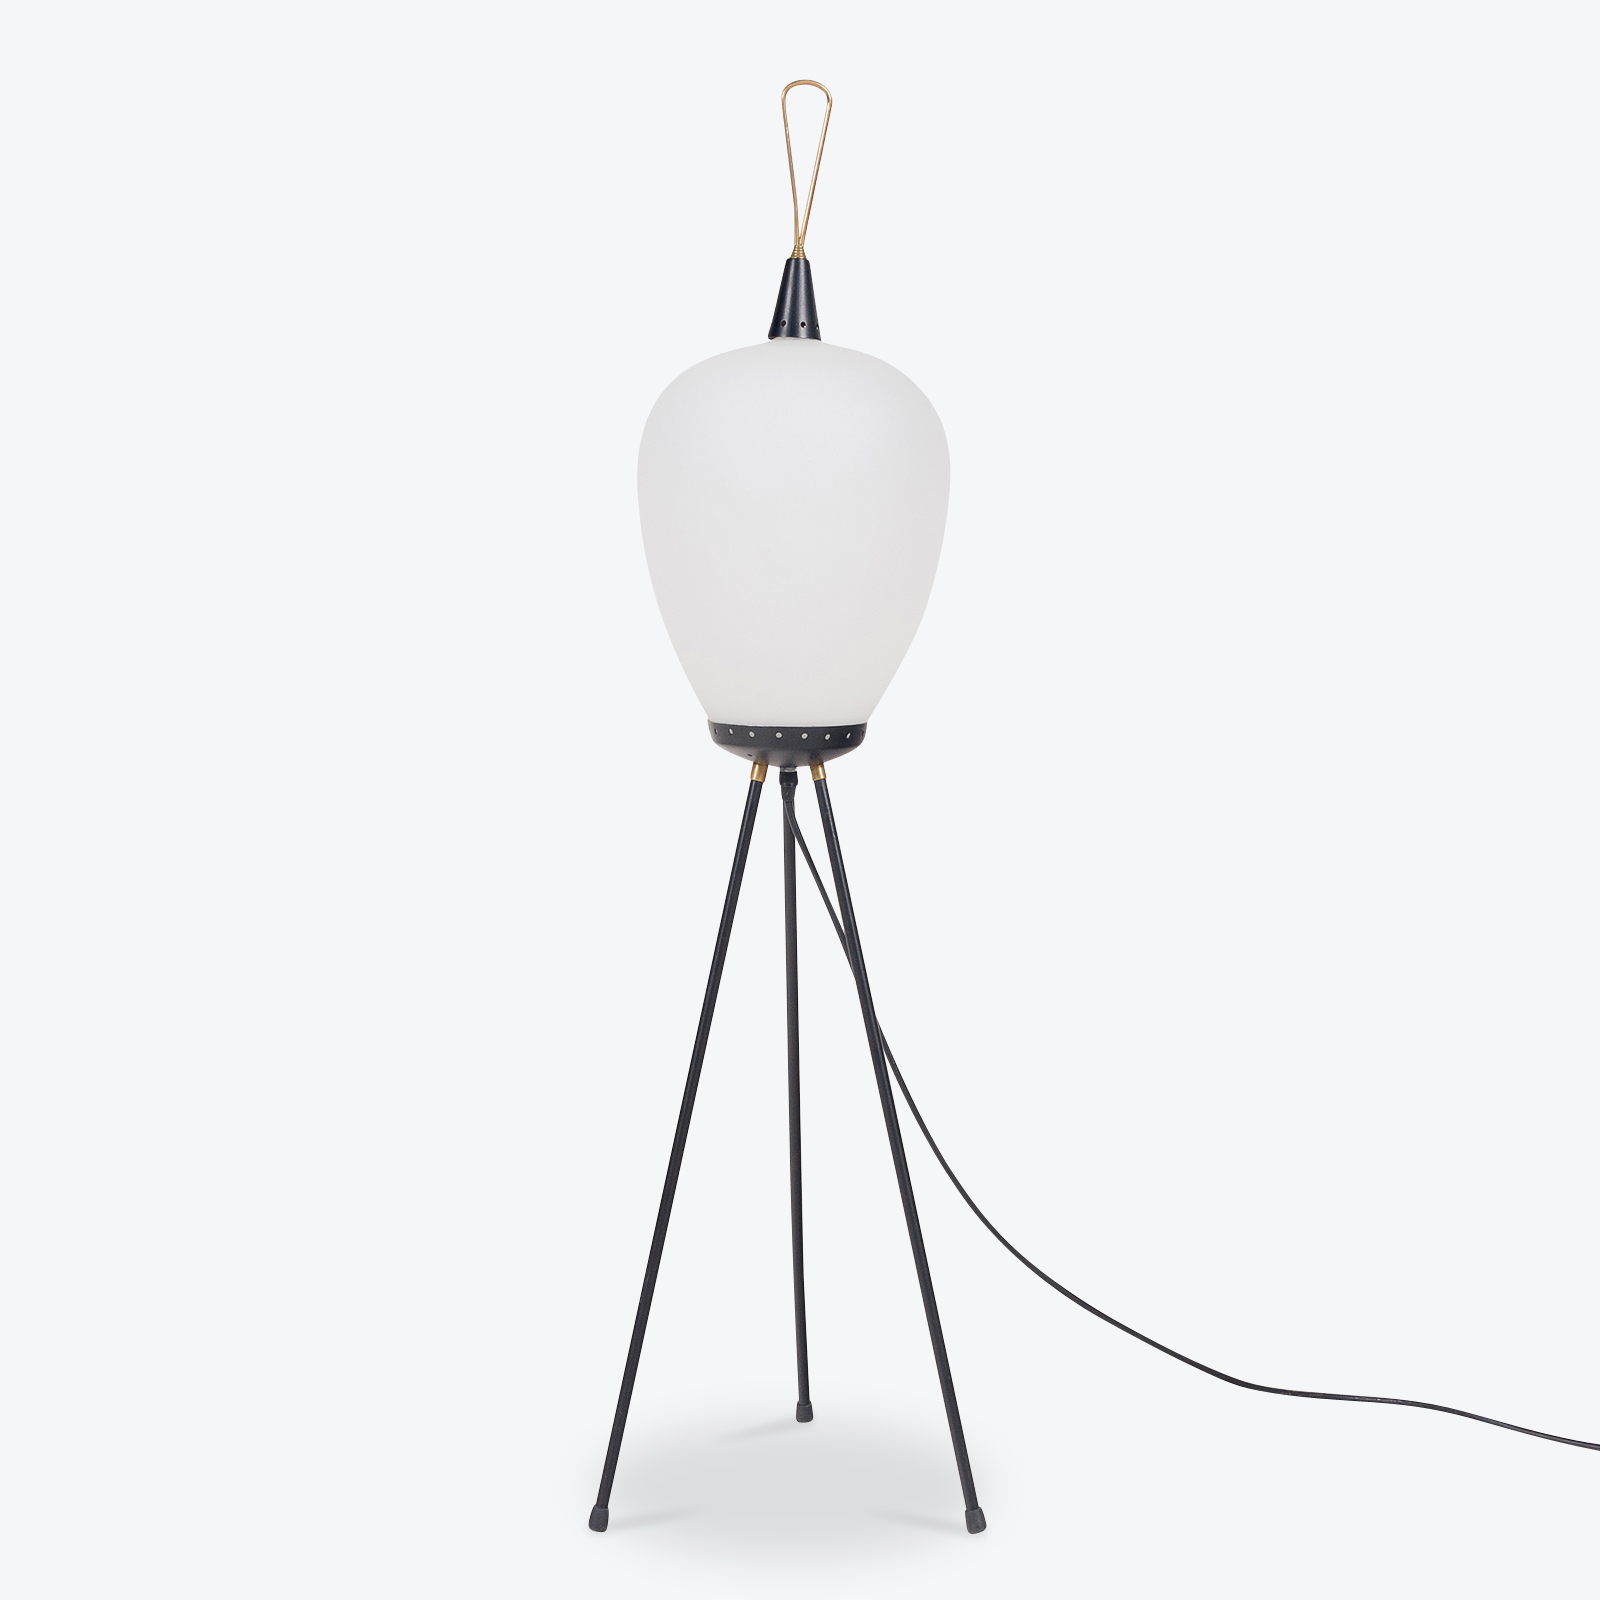 Lantern floor lamp in the style of gio ponti 1950s italy modern lantern floor lamp in the style of gio mozeypictures Gallery